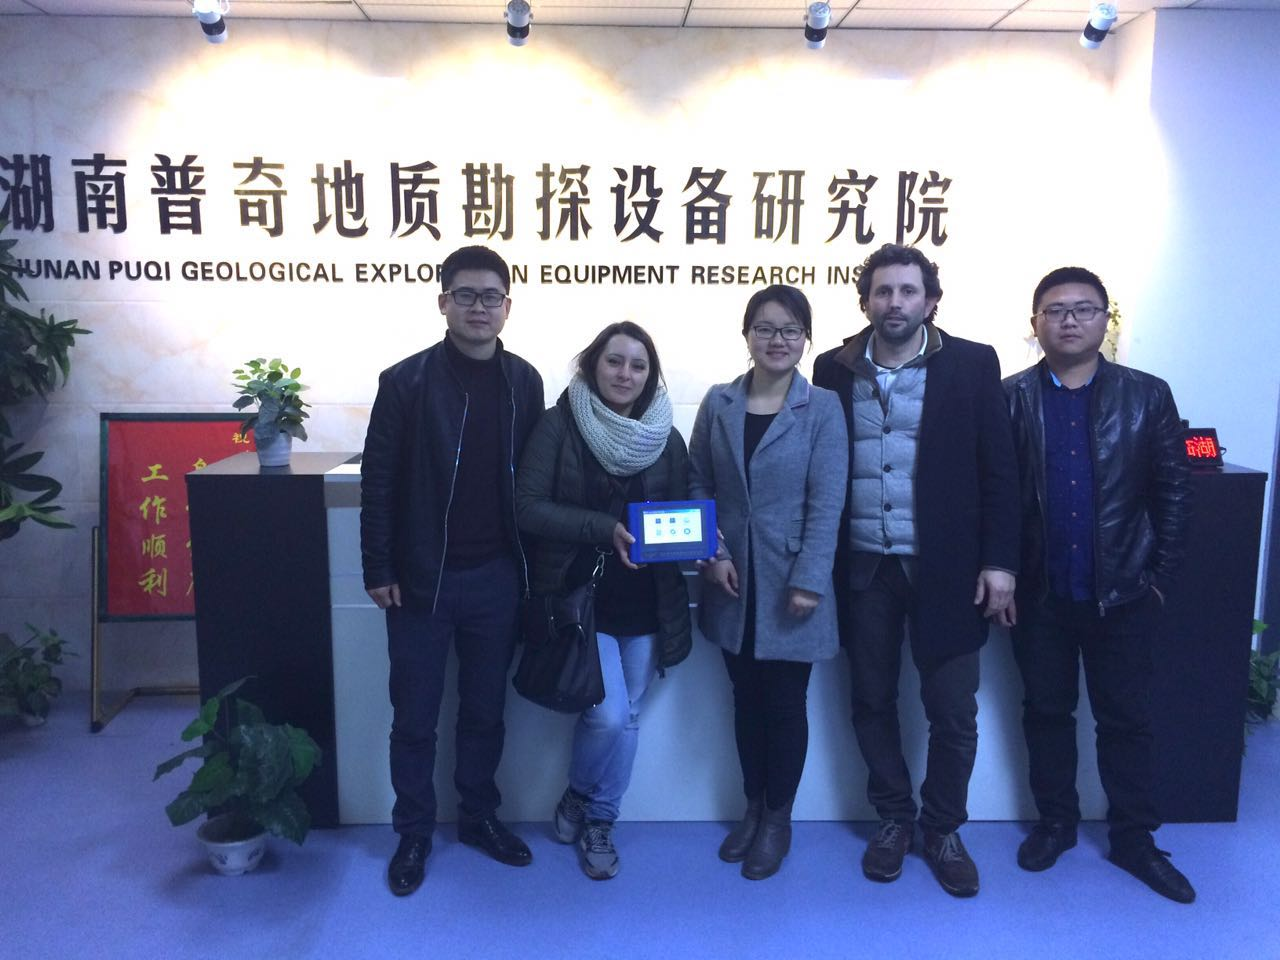 The Italy customer visit us and we start the long term business cooperation ship